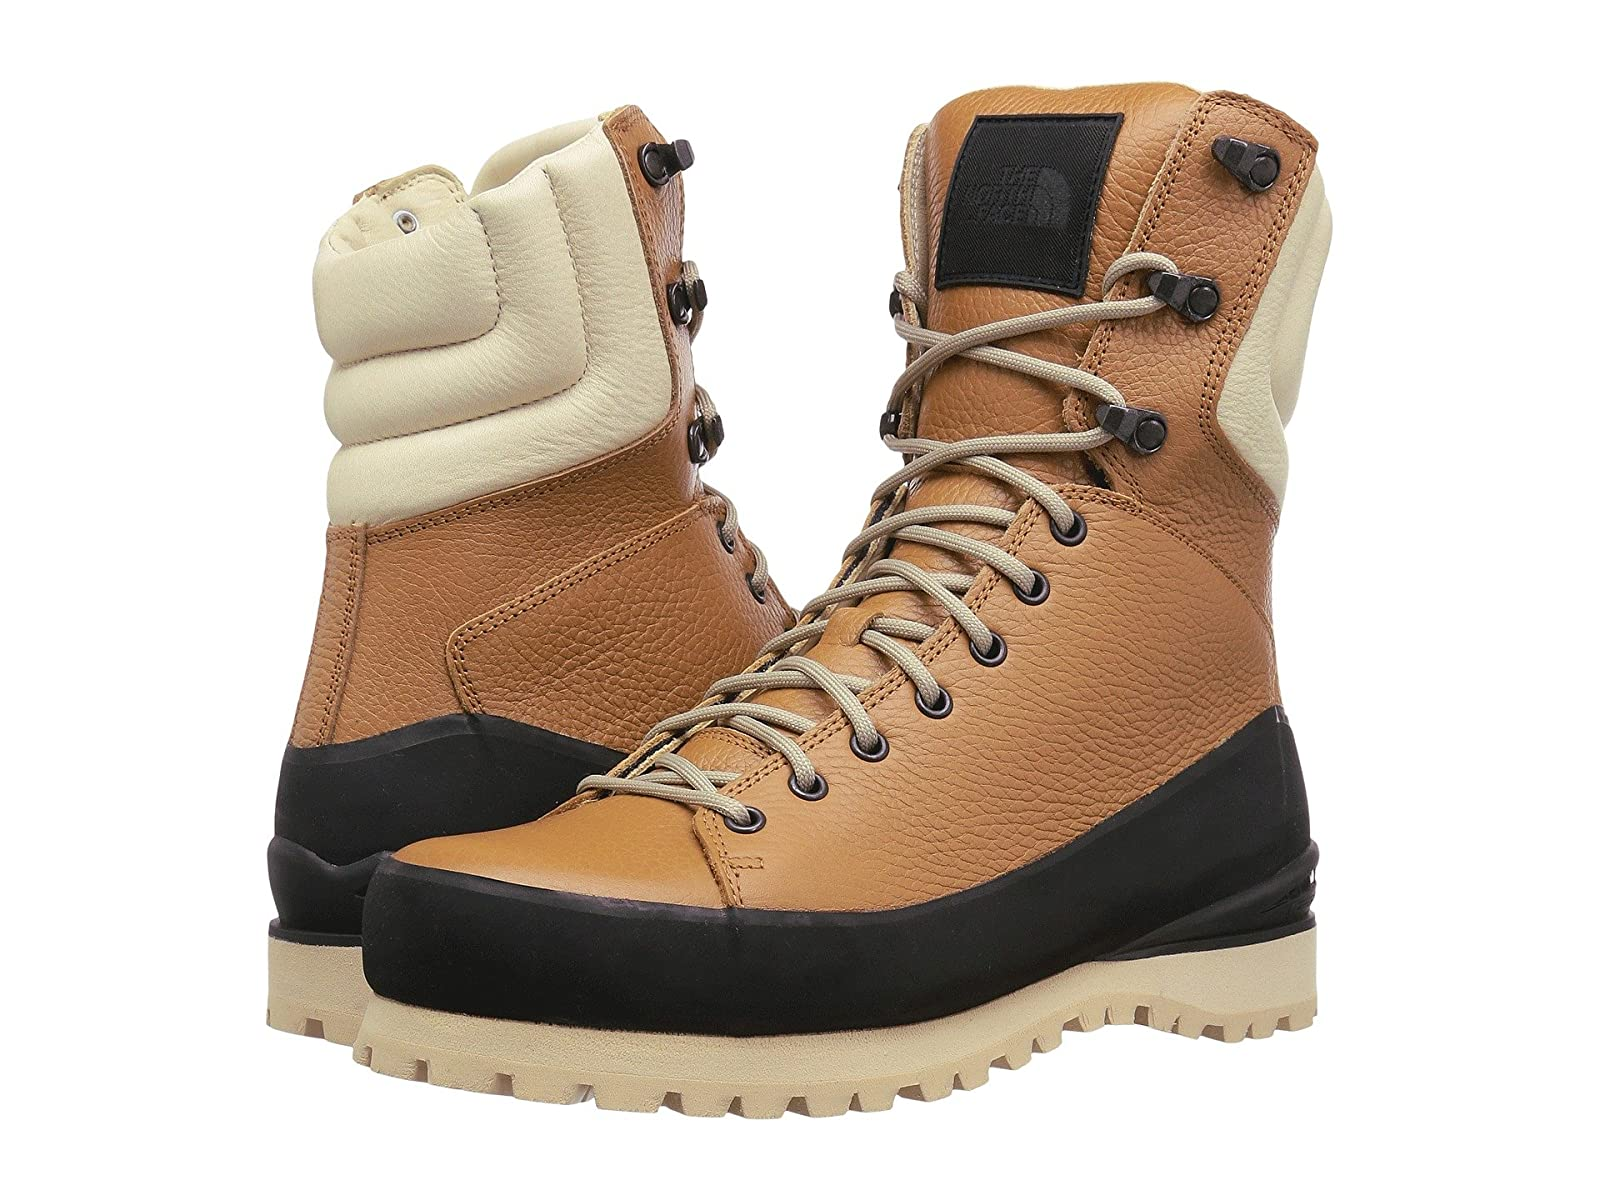 Cryos by The North Face Cryos BootCheap and distinctive eye-catching shoes